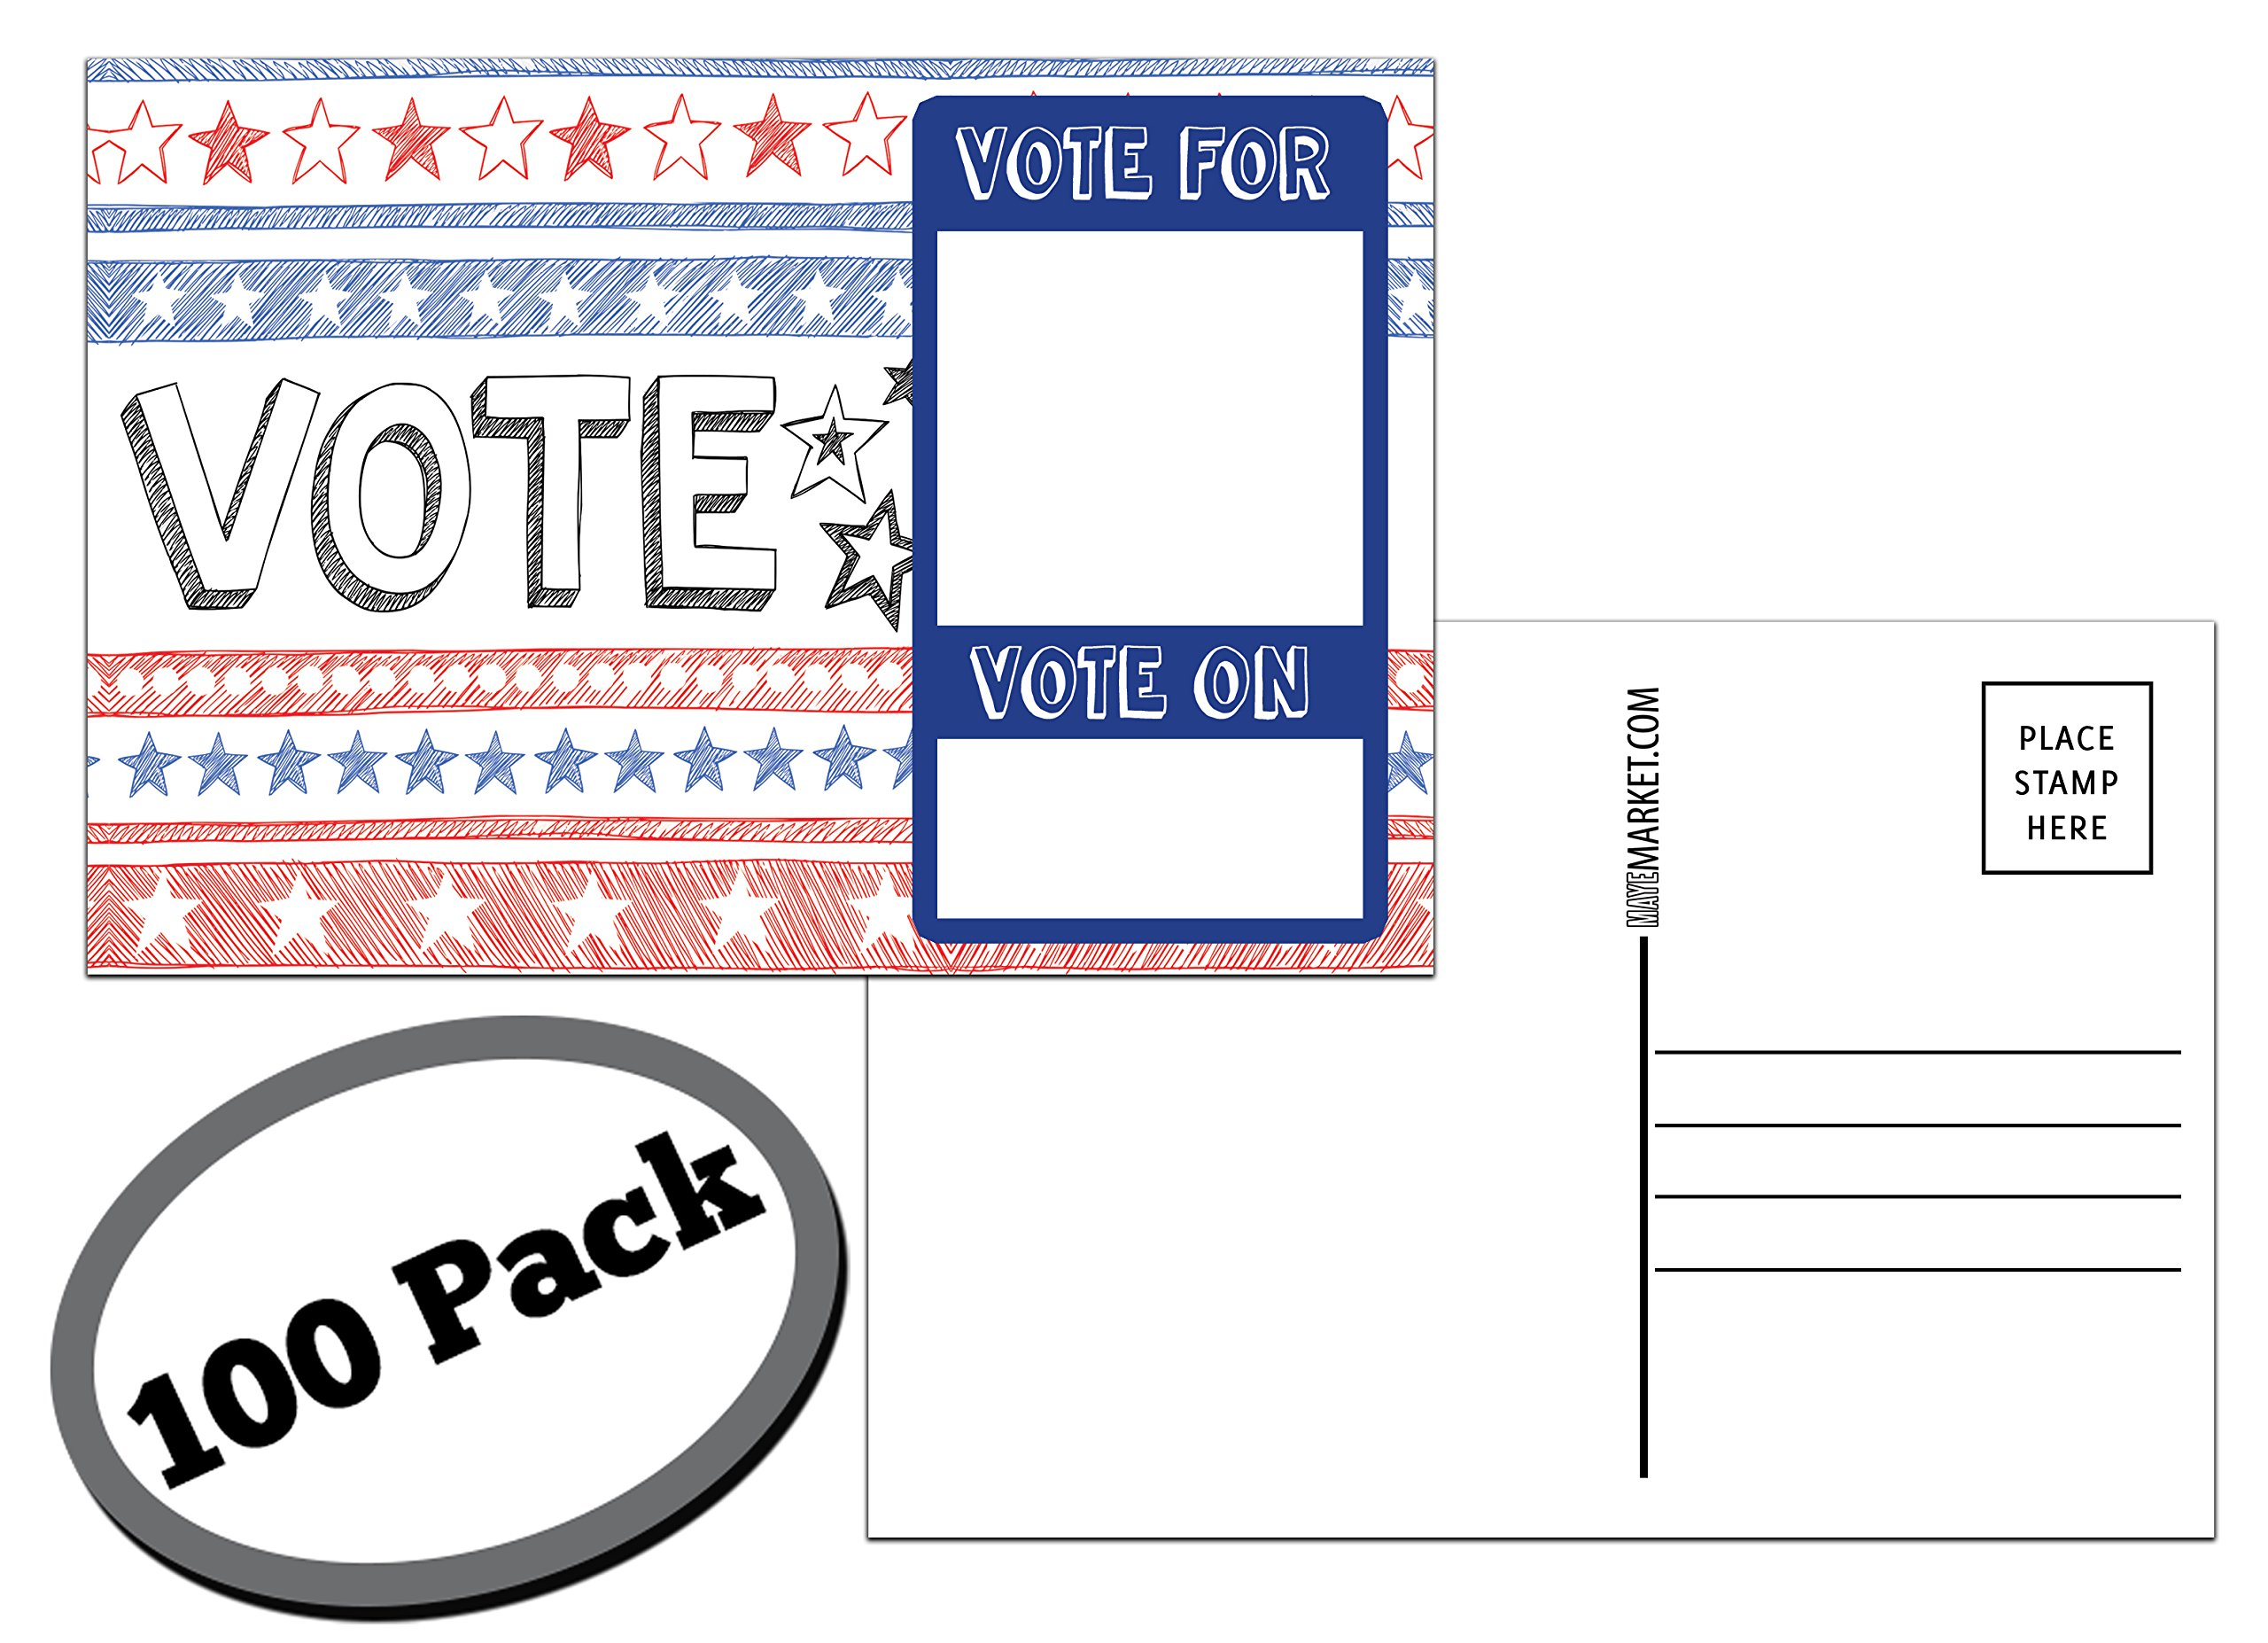 100 Pack of Blank Postcards. Each post card in this patriotic, bulk set is 4 x 6, USPS compliant (mailable), and USA made. Mail to voters to get votes. Flip side is plain white and unused. (sketch)